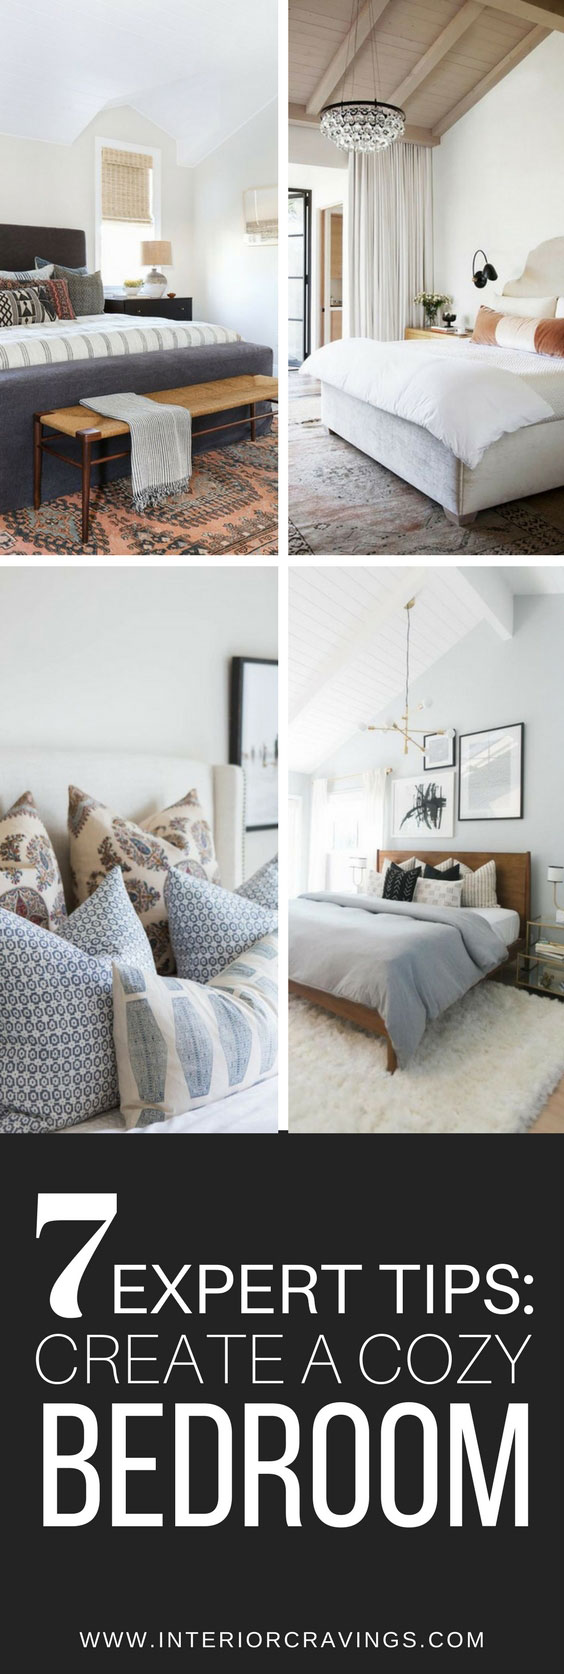 cozy bedroom. 7 Expert Tips To Create A Cozy Bedroom